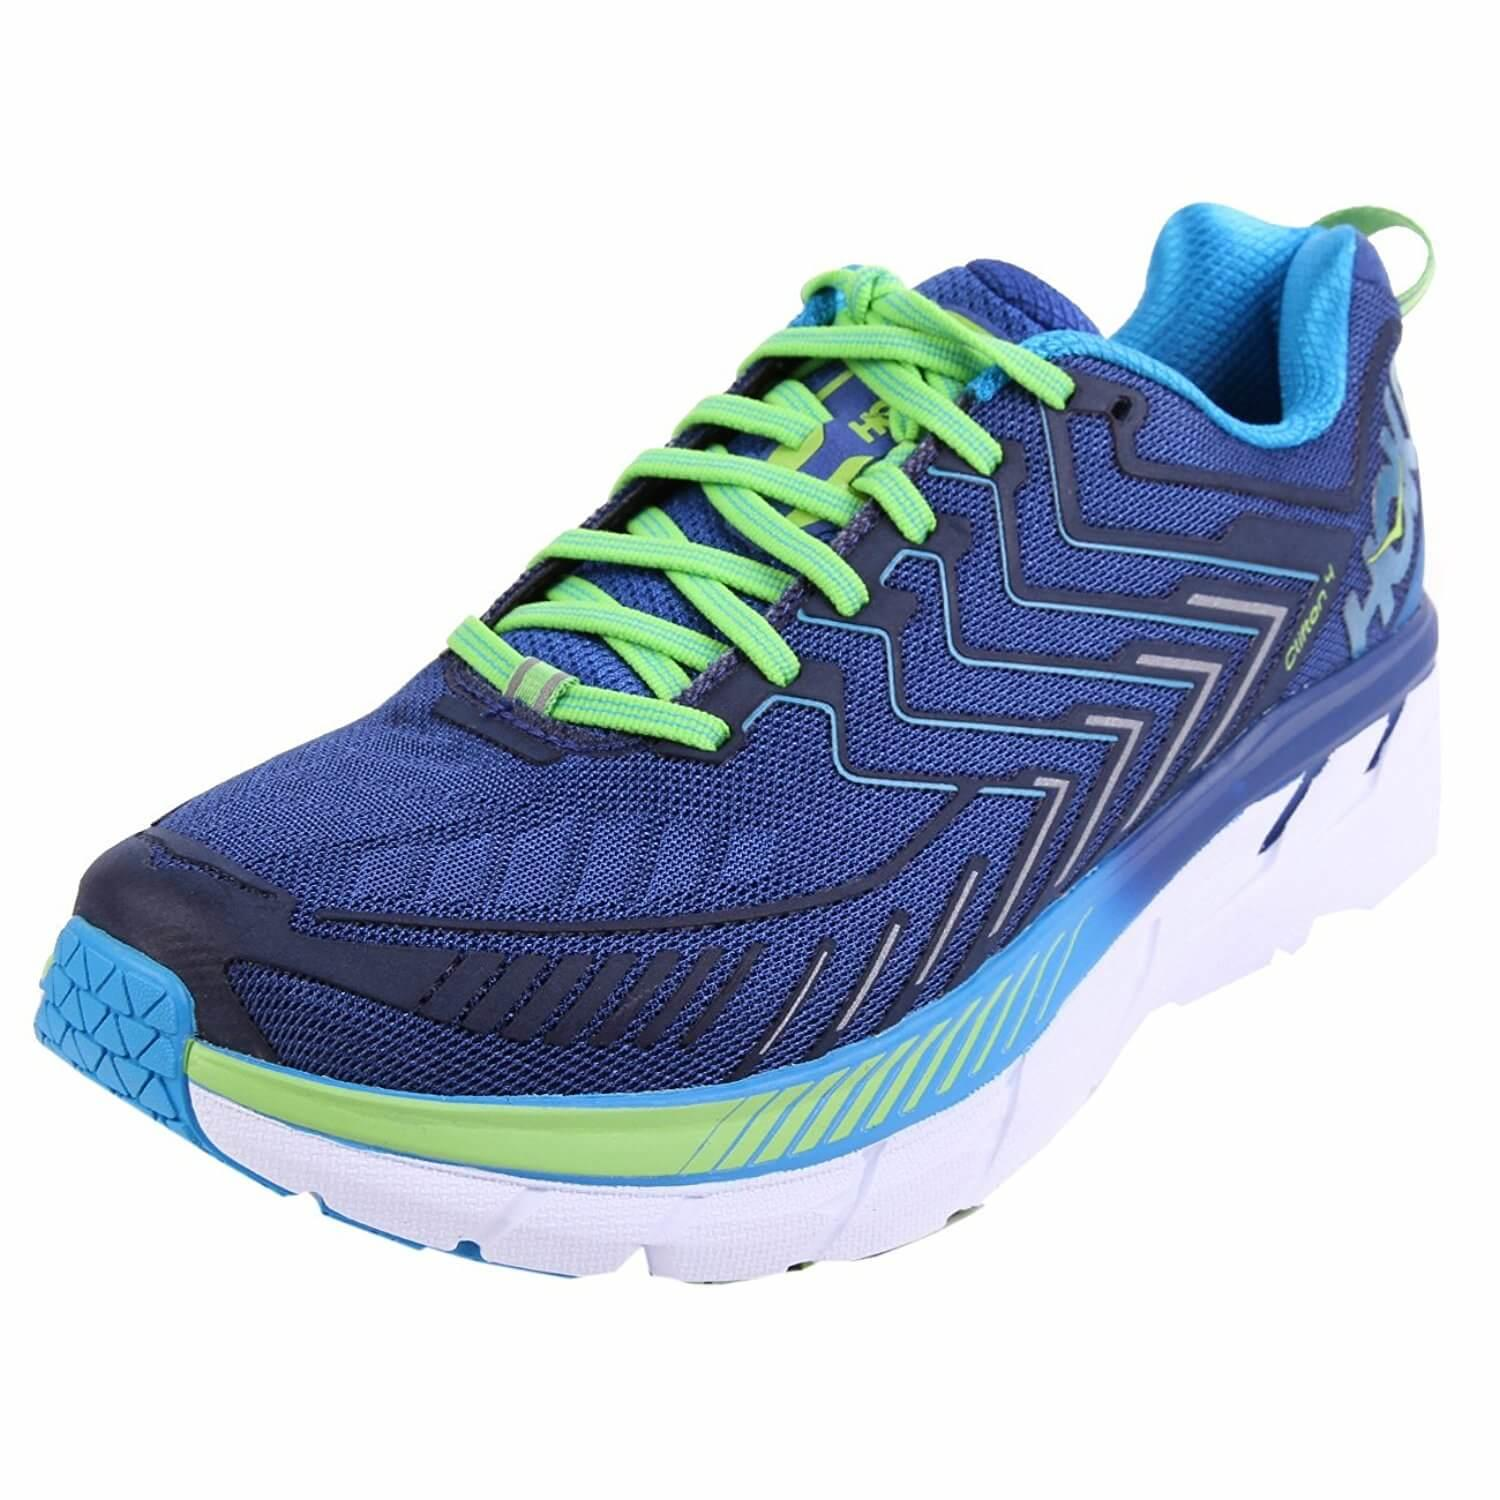 Best Hoka Running Shoes